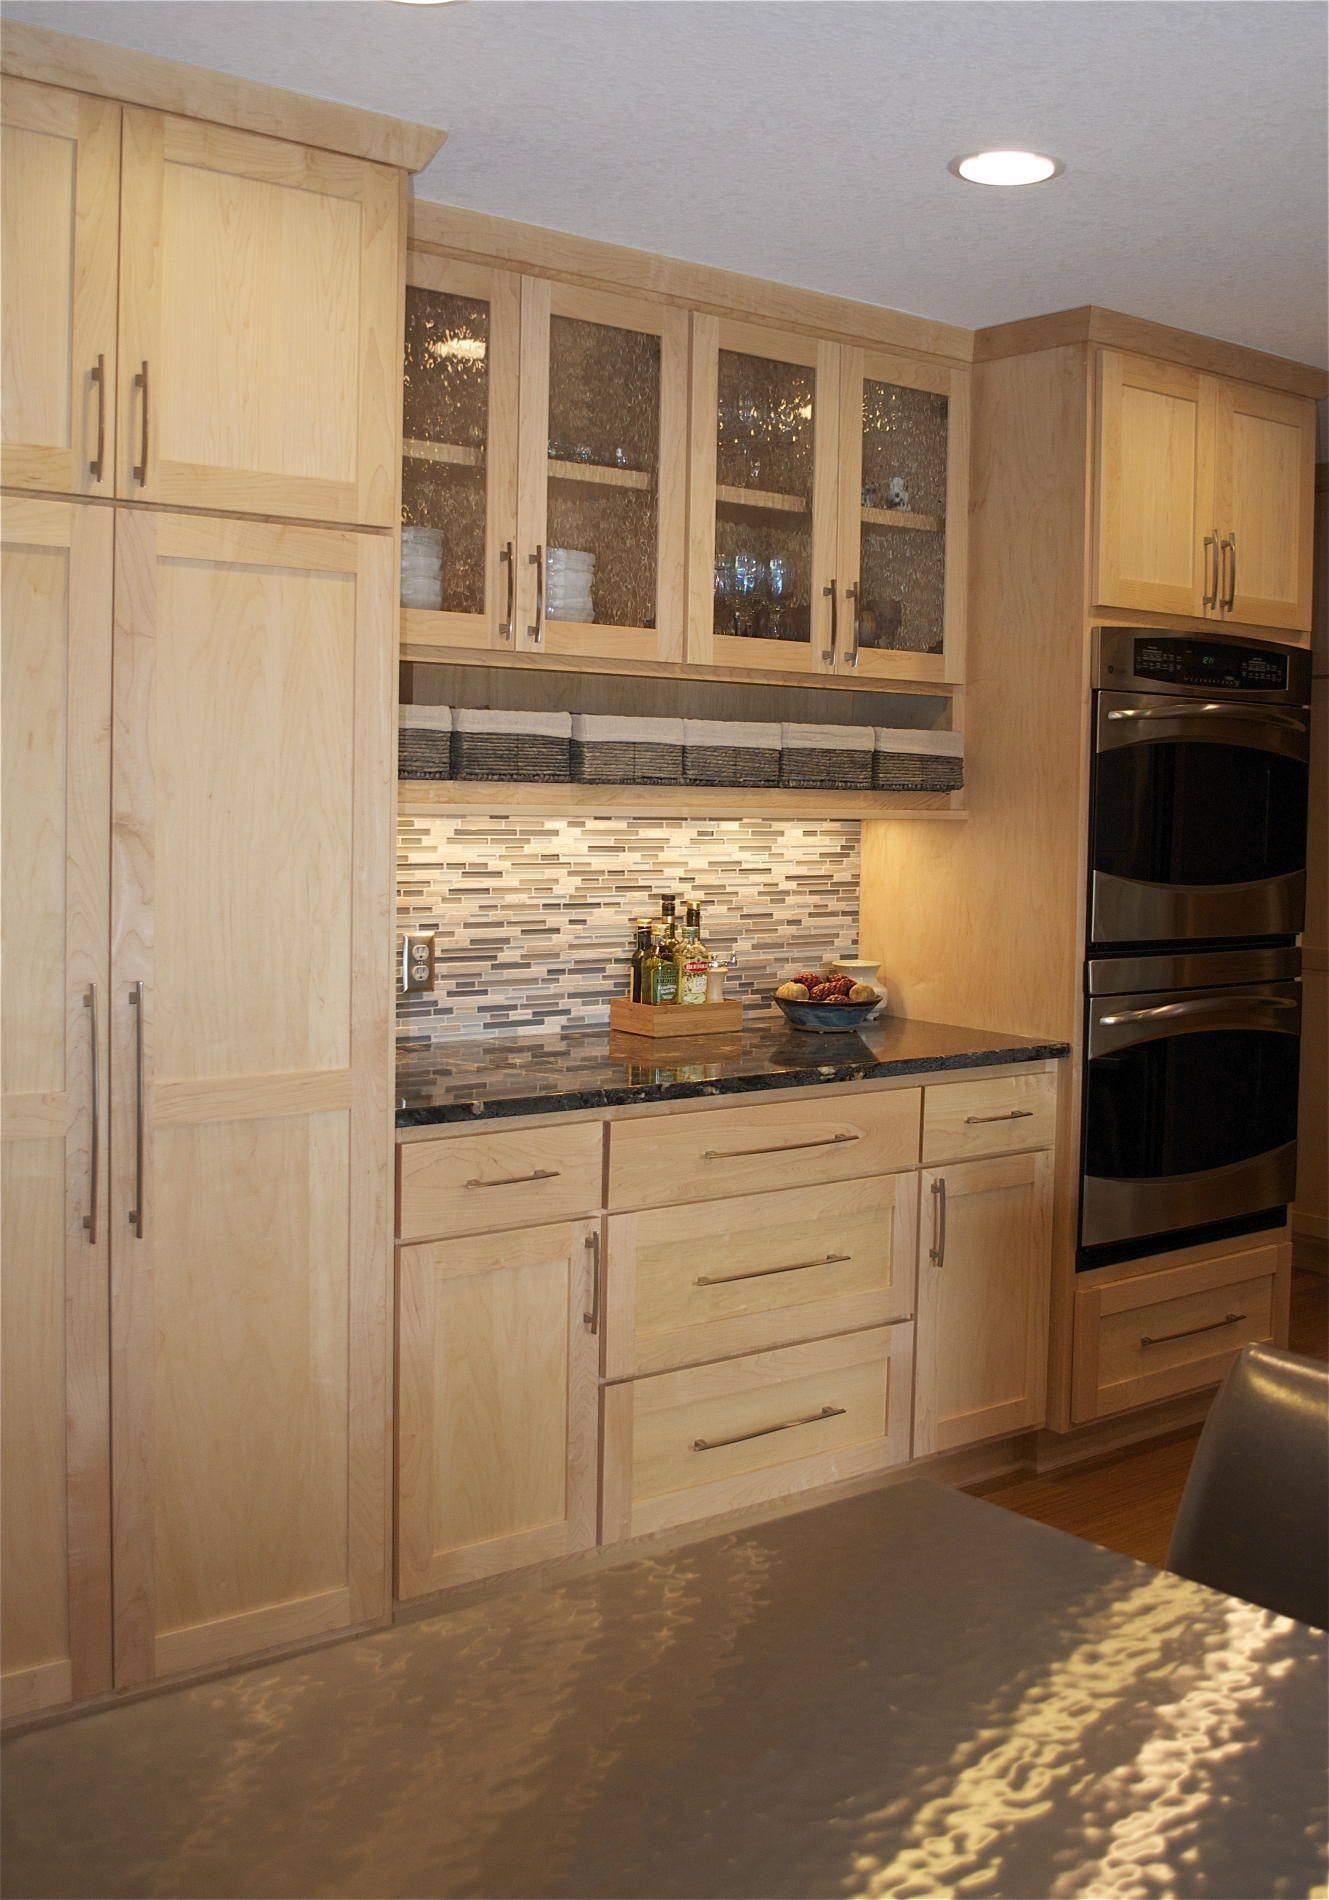 Kitchen Colors With Light Wood Cabinets Kitchen Colors With Light Wood Cabinets Then Dining Table